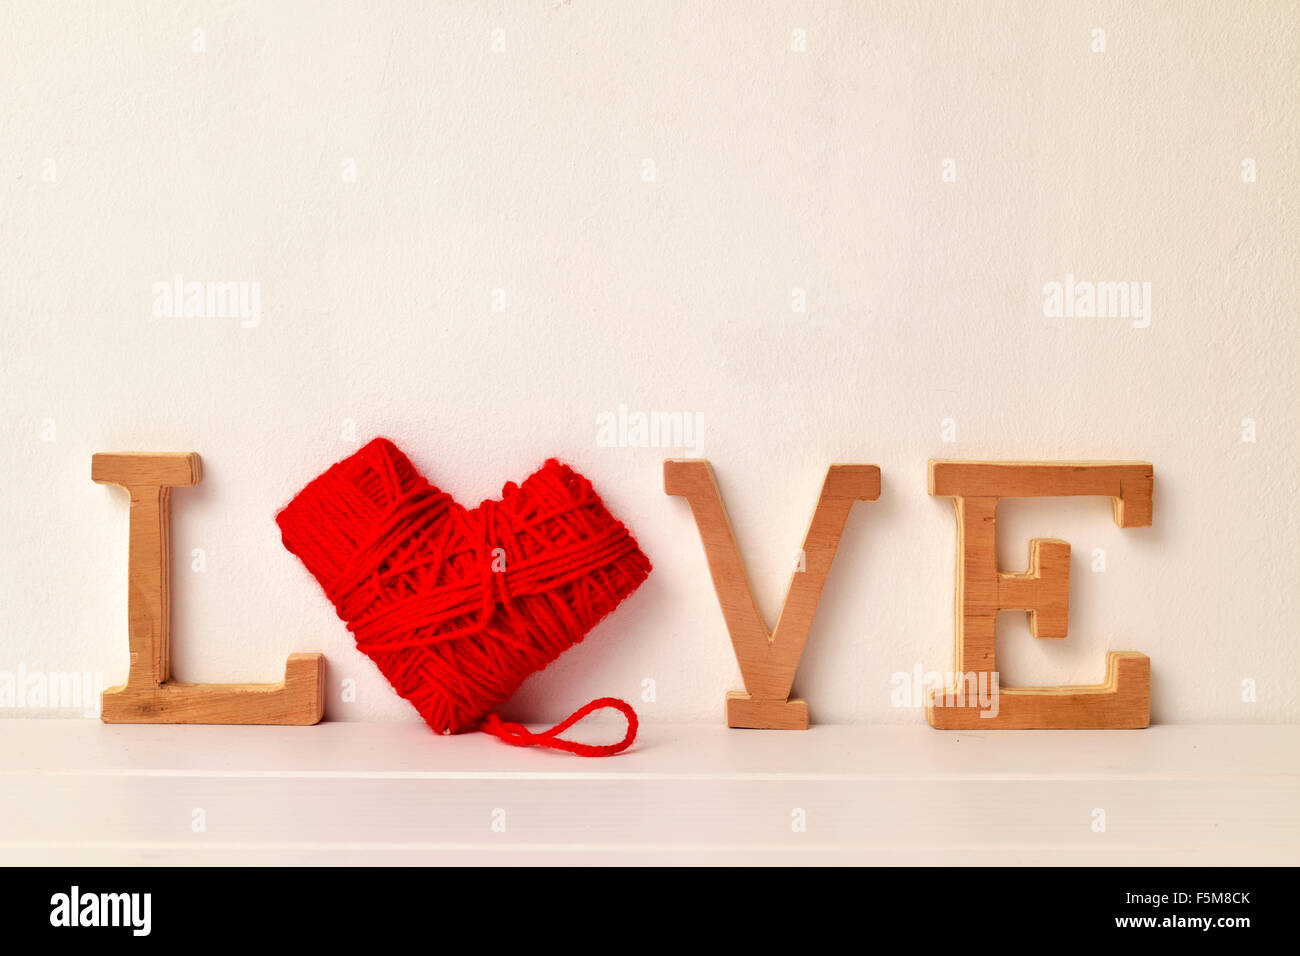 some wooden letters and a heart-shaped coil of red yarn forming the word love - Stock Image